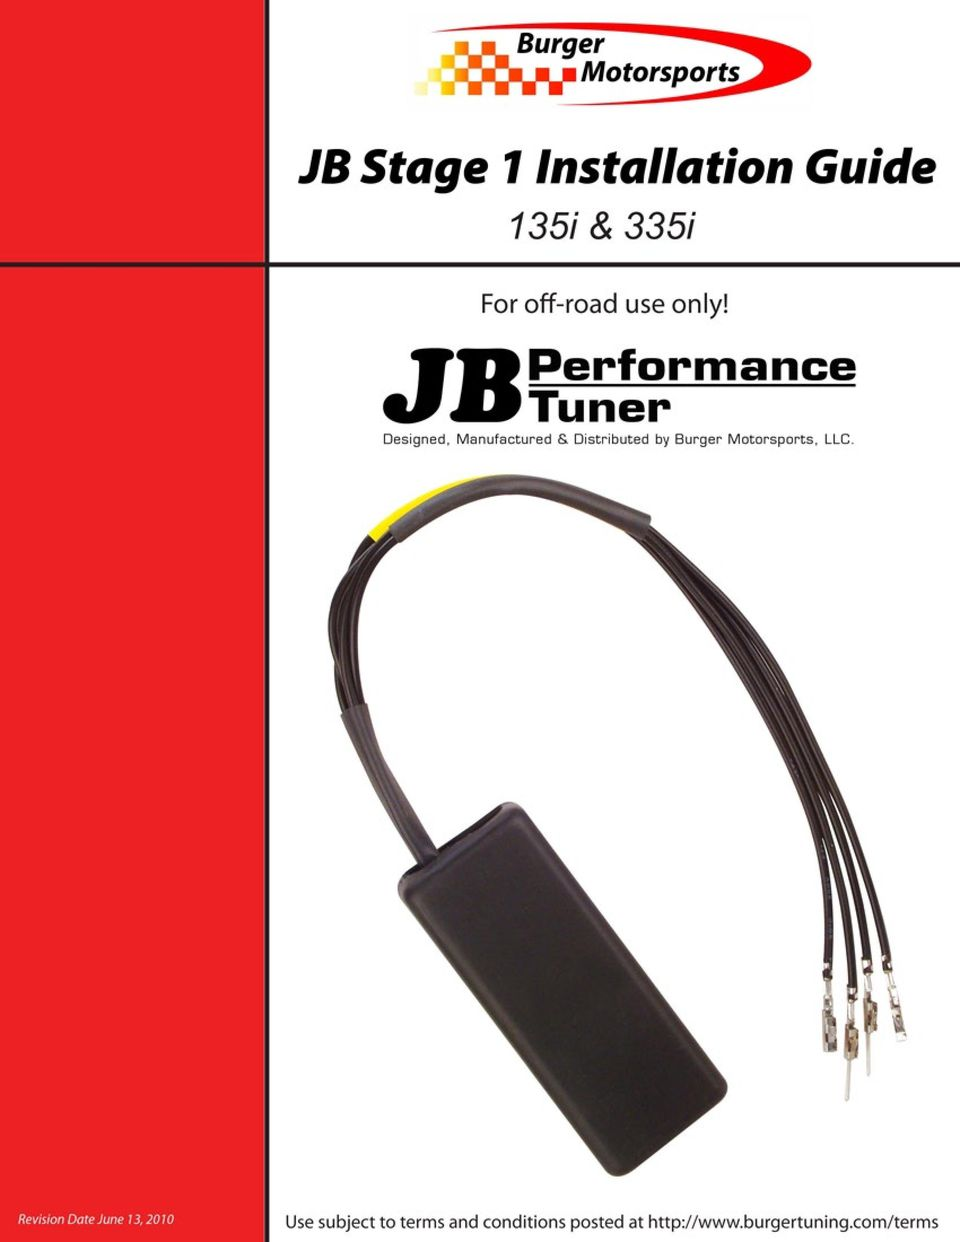 Juice Box Stages 12 135335 Installation Guide 5 10 08 Pdf Addacircuitfuseadapteriphoneipodinstallmiatajpg 2 Tools Required 8mm Socket Or Nut Driver Small Flat Head Screwdriver Electrical Tape Masking Shrink Tube Pep Talk Although The Install Looks